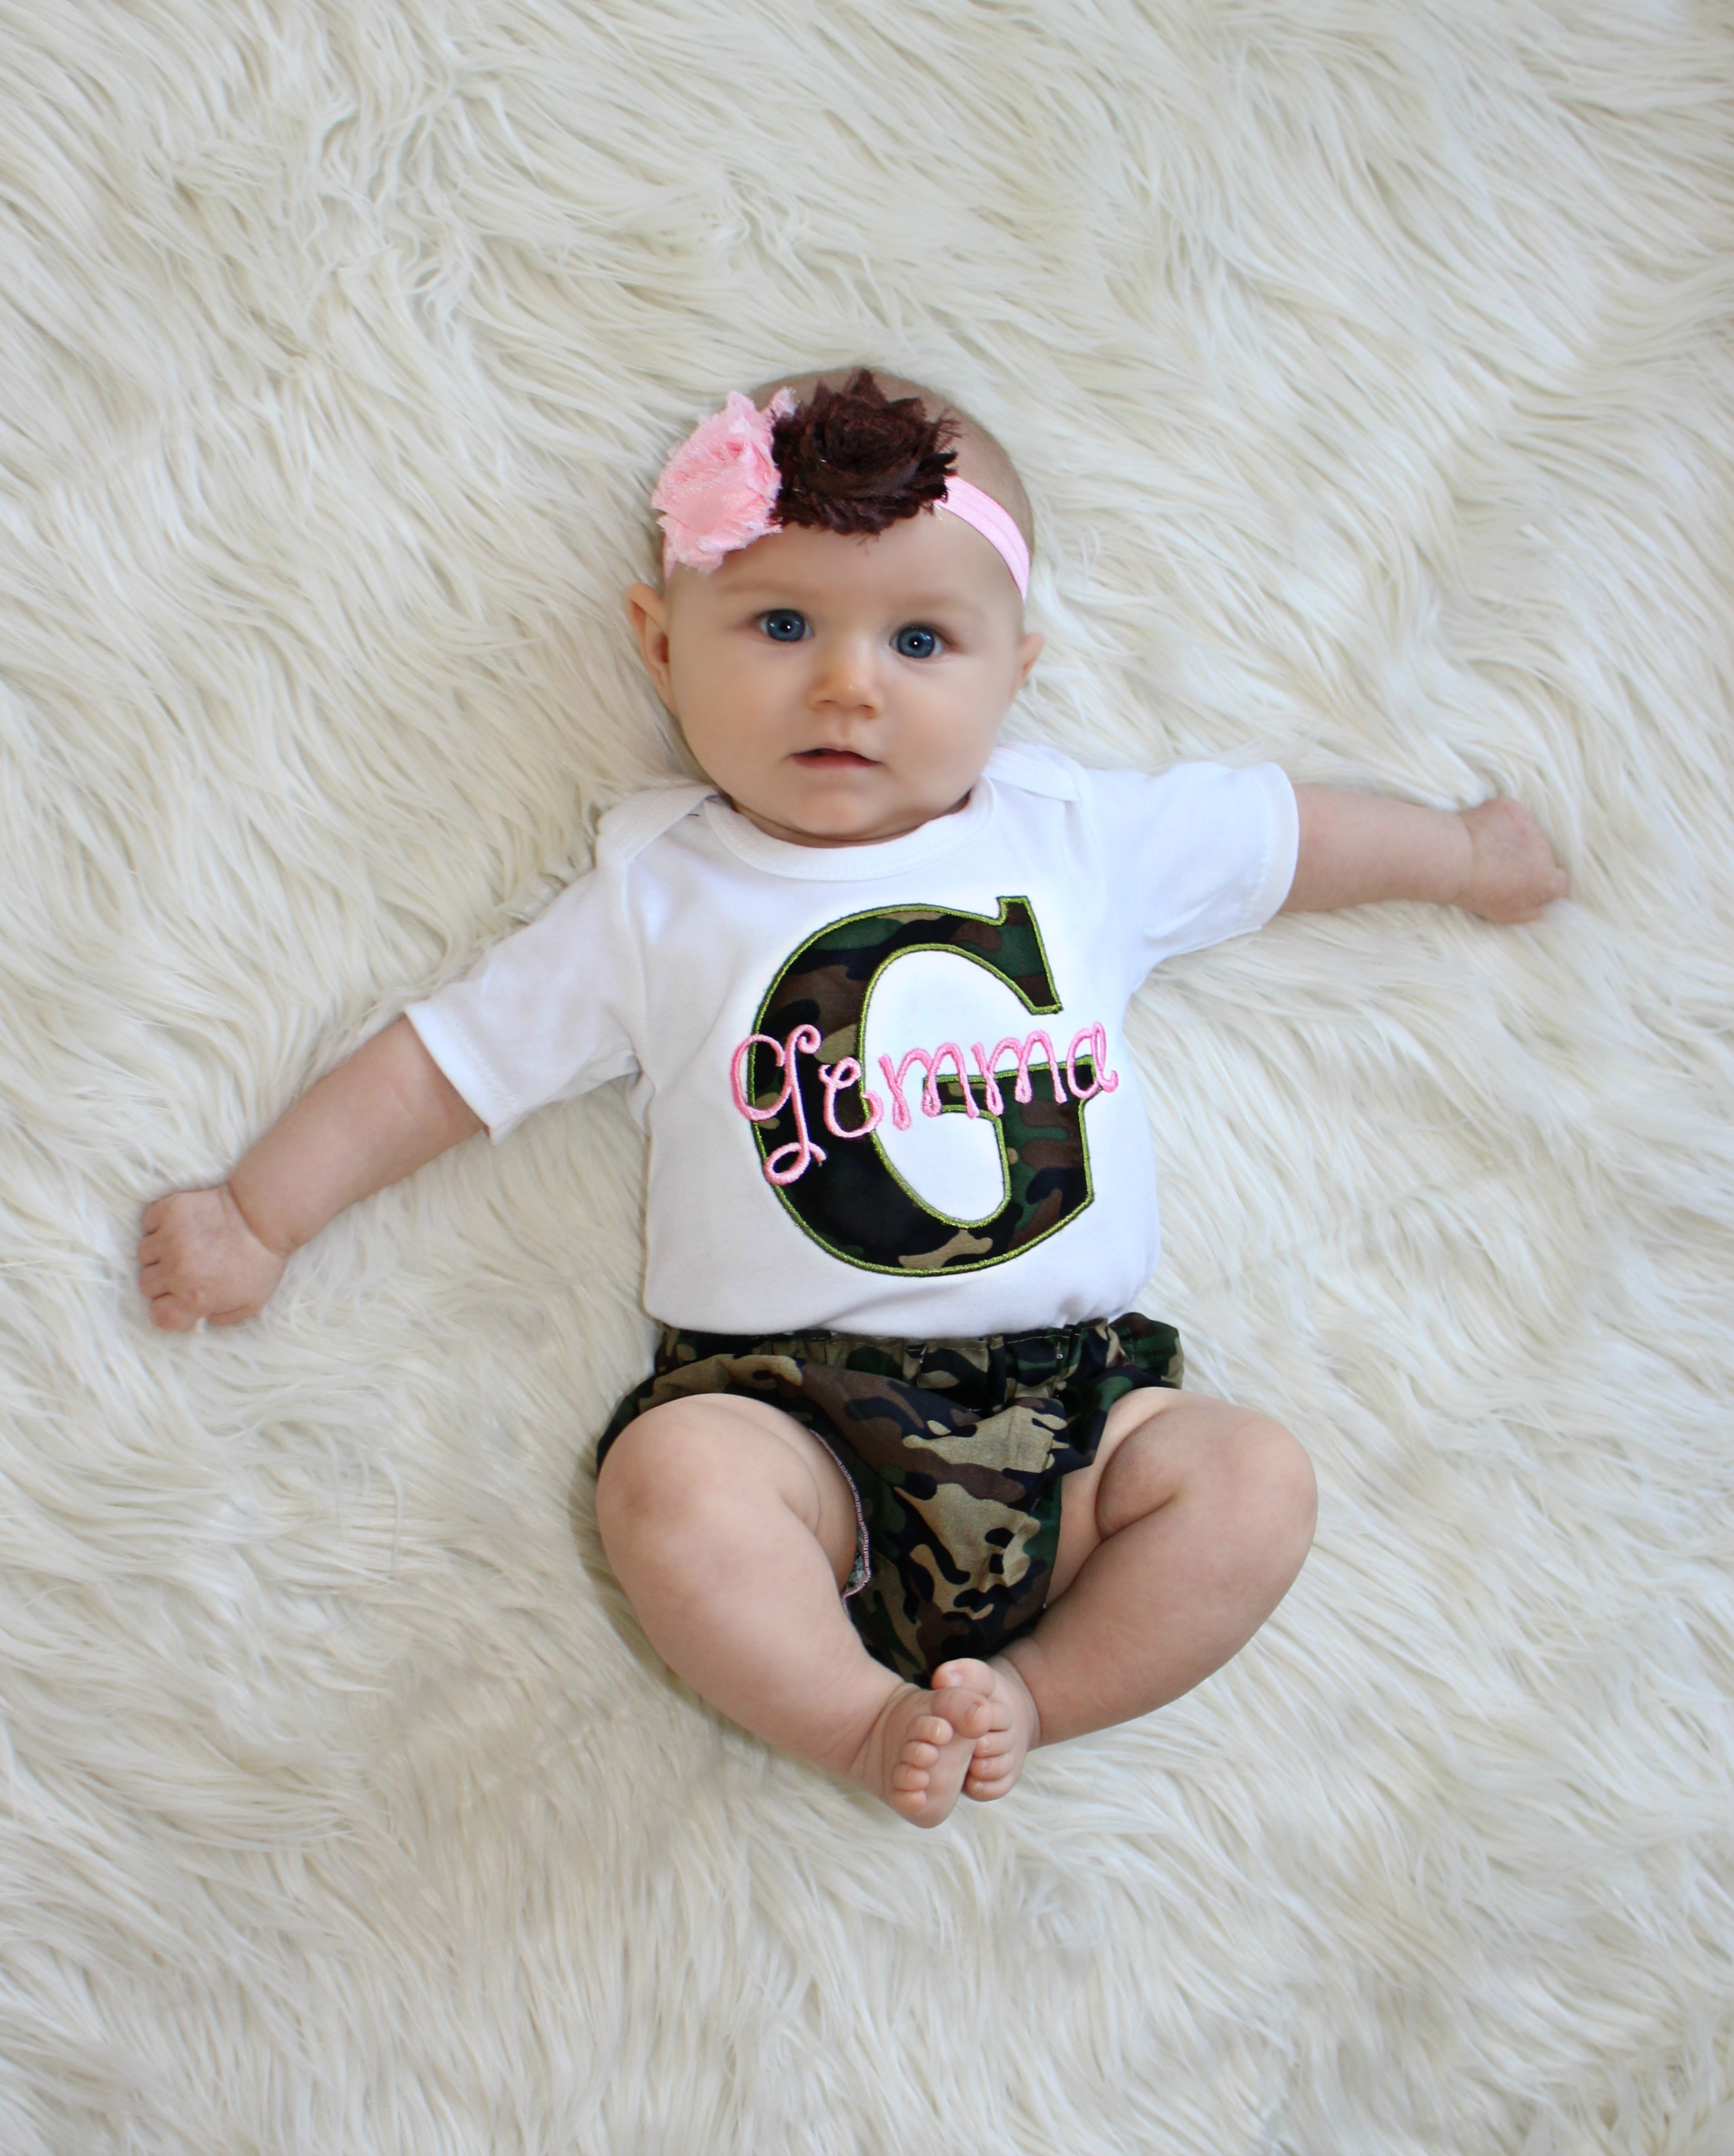 Baby Girl Camo Clothes, Cute Baby Girl Outfits, Camo Baby Stuff, Babies Clothes, Toddler Outfits, Camo Girl Outfits, Redneck Girl Outfits, Kids Outfits, Babies Pics, Outfits, Girls Dresses, Clothes For Girls, Bebe, Noel, Cast On Knitting, Kids Clothes, Kindergarten Outfit, Kid Outfits.